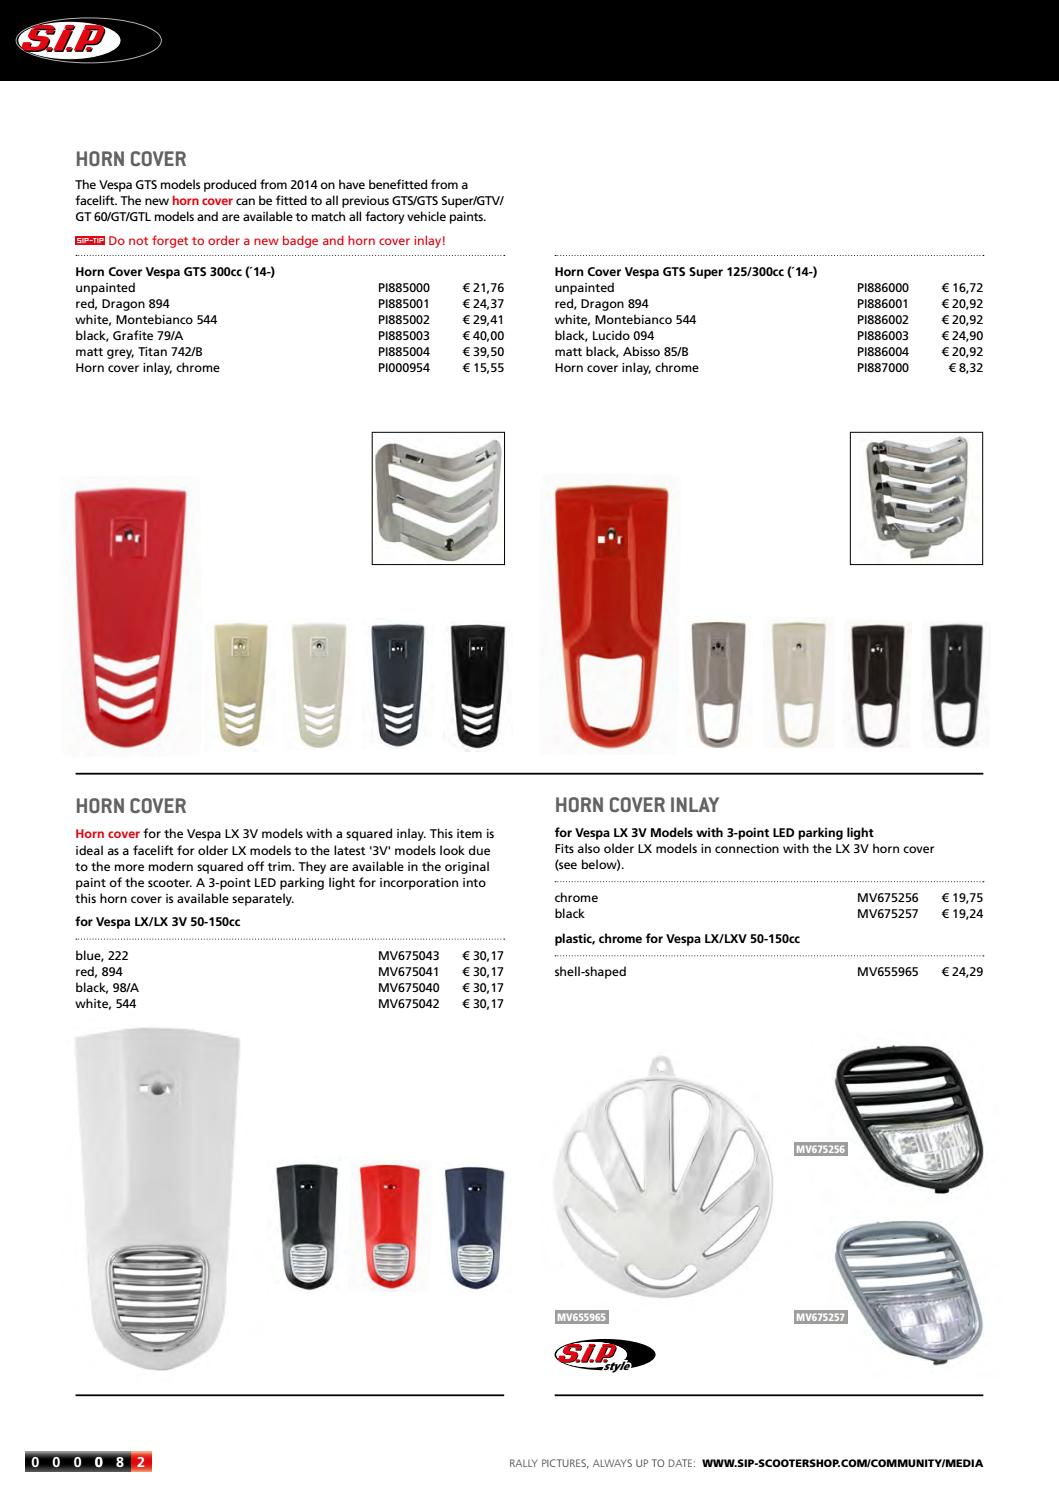 Catalogue Sip For Modern Vespa 2017 2018 By Sip Scootershop Gmbh Issuu